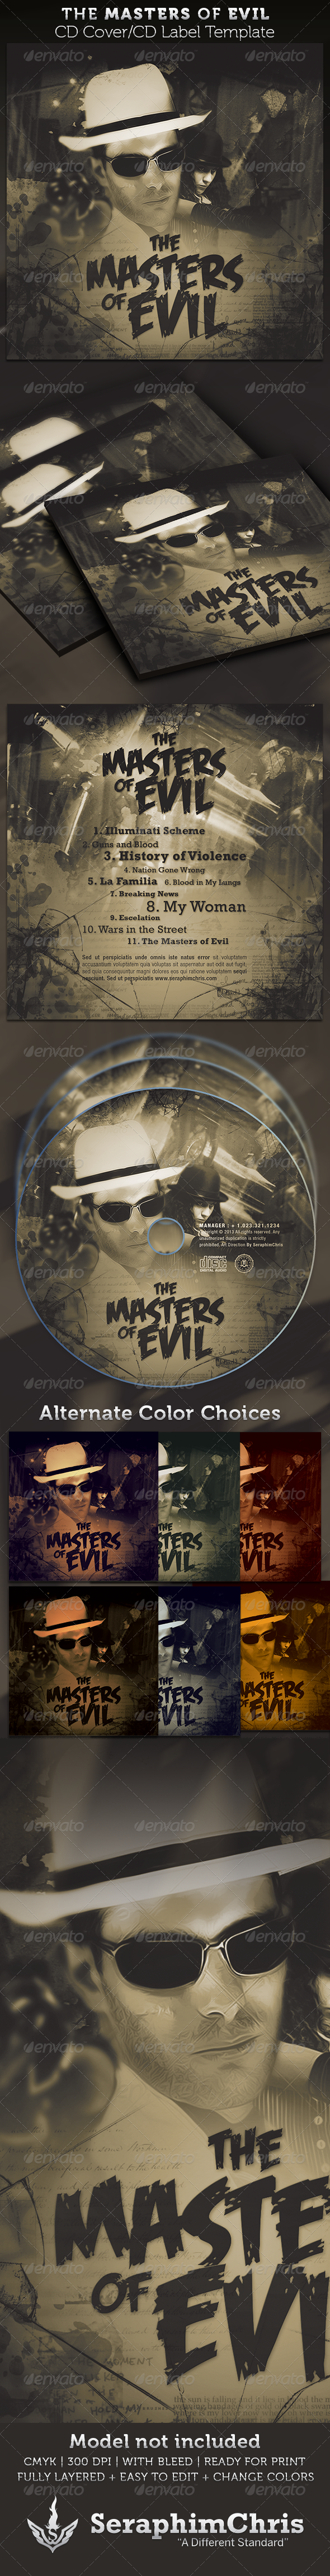 The Masters of Evil CD Cover Artwork Template - CD & DVD artwork Print Templates